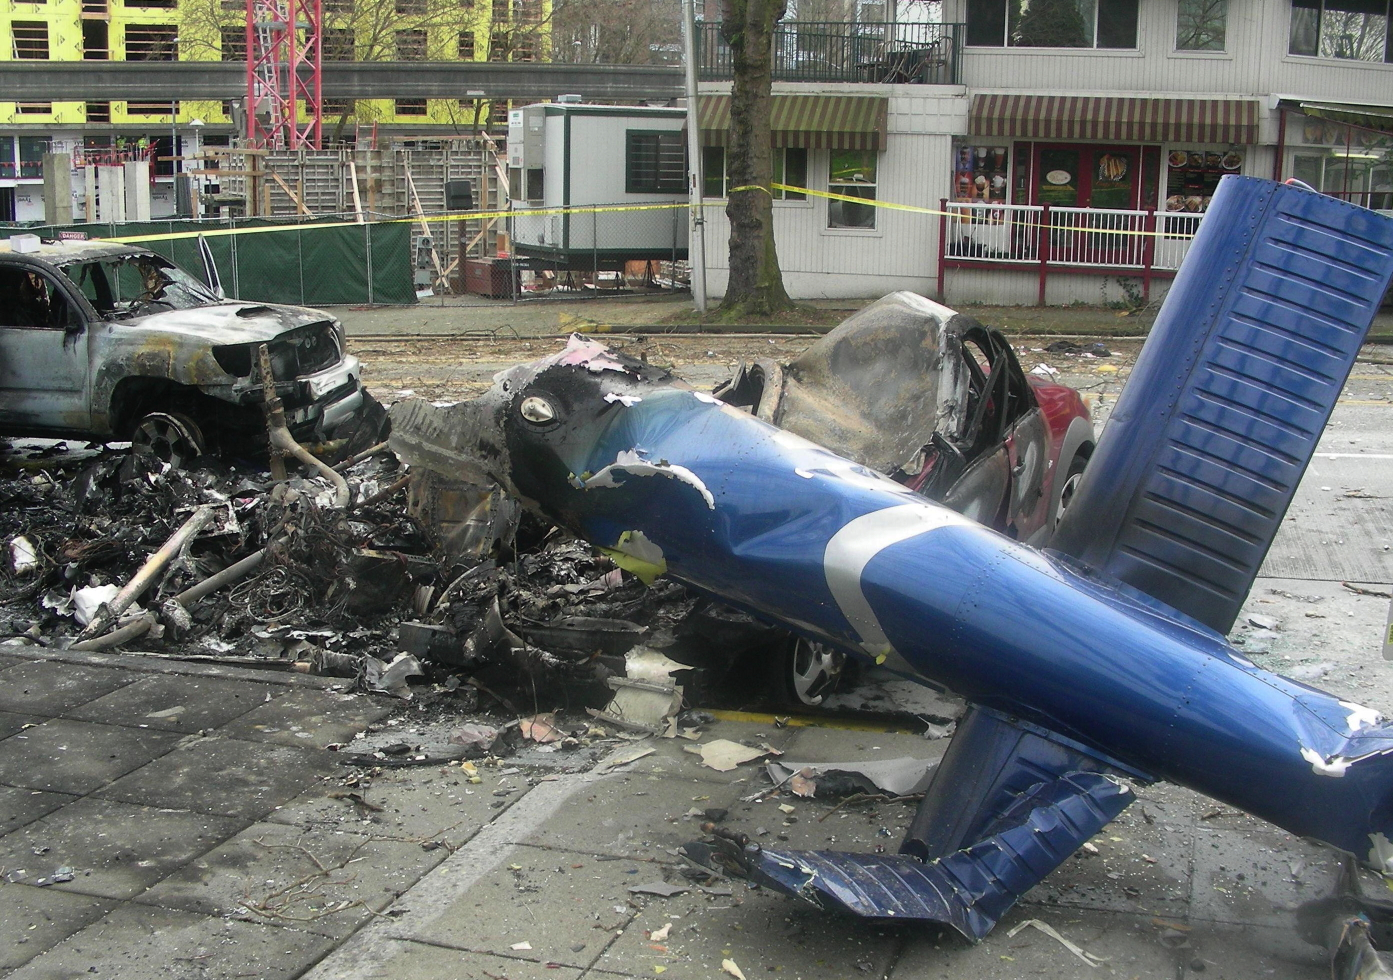 Wreckage of Seattle helicopter crash